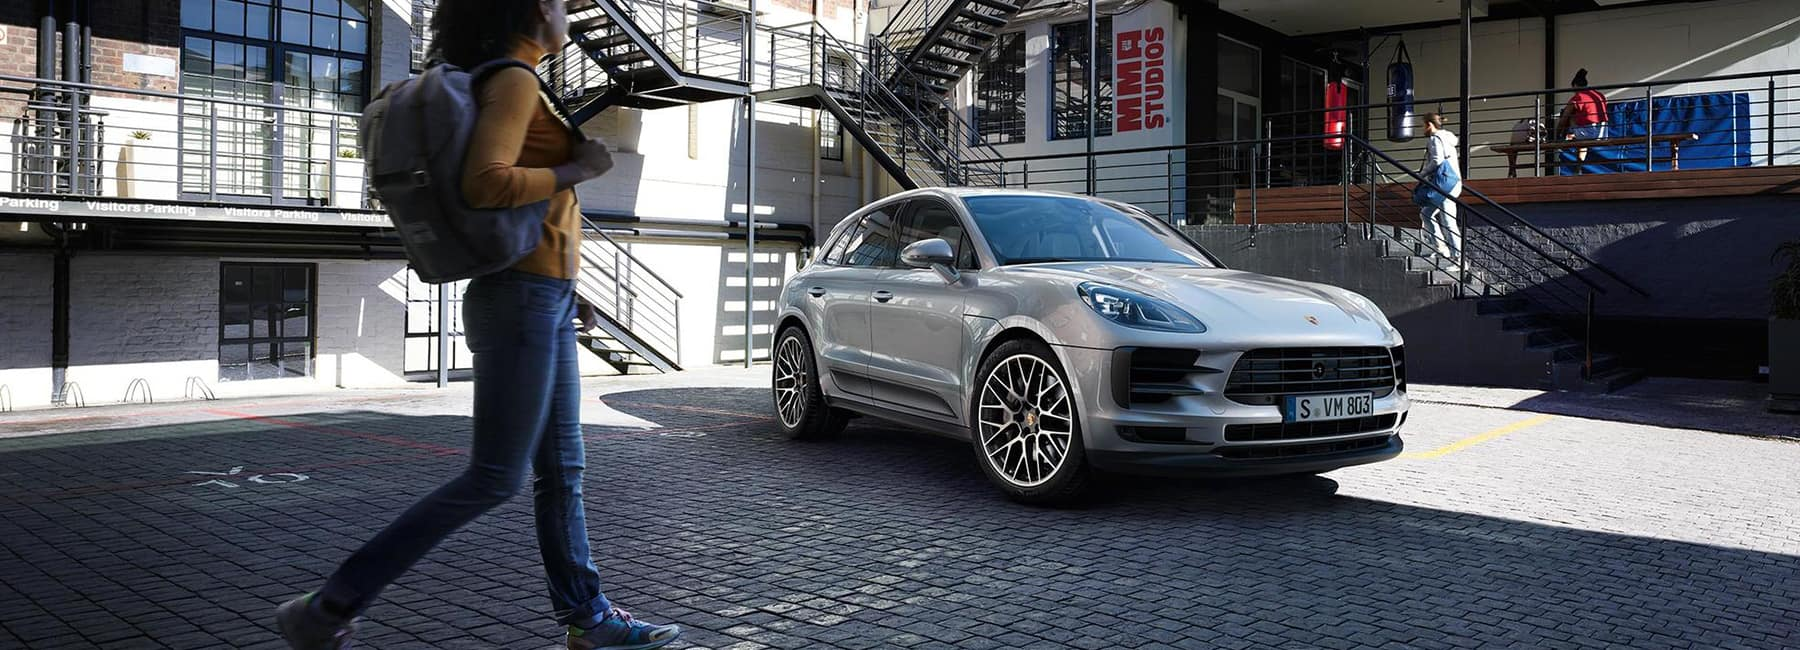 Porsche Macan vs BMW X3 vs Lexus NX vs Mercedes-Benz GLC Comparison at Porsche of Ann Arbor